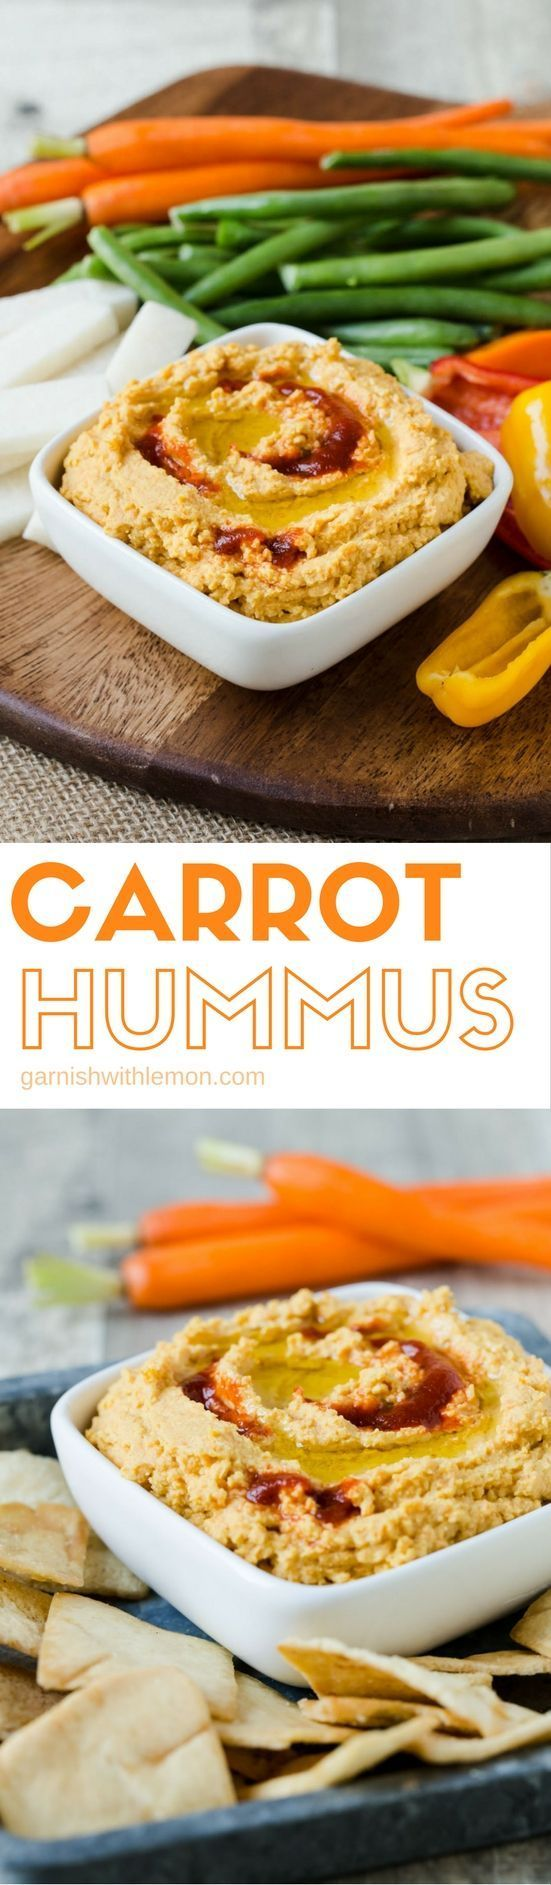 Make your veggie tray the star of the party with this make-ahead Carrot Hummus recipe.